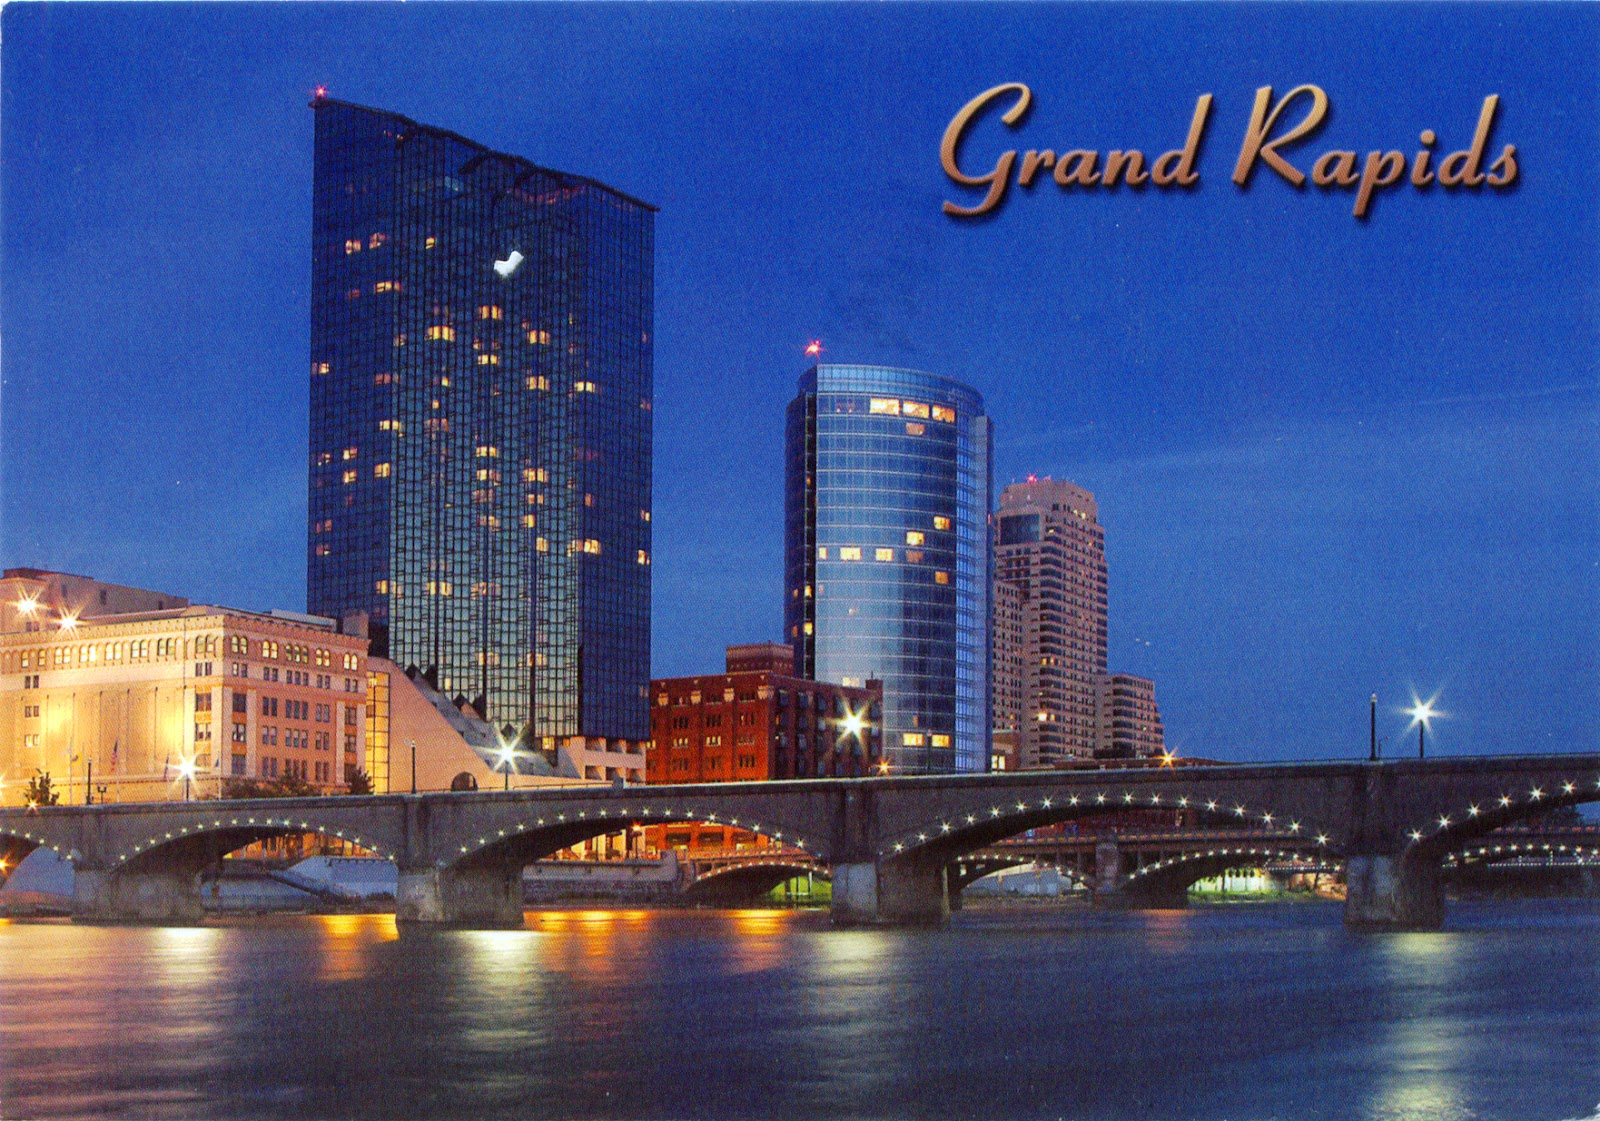 Grand Rapids (MI) United States  city images : Grand Rapids City